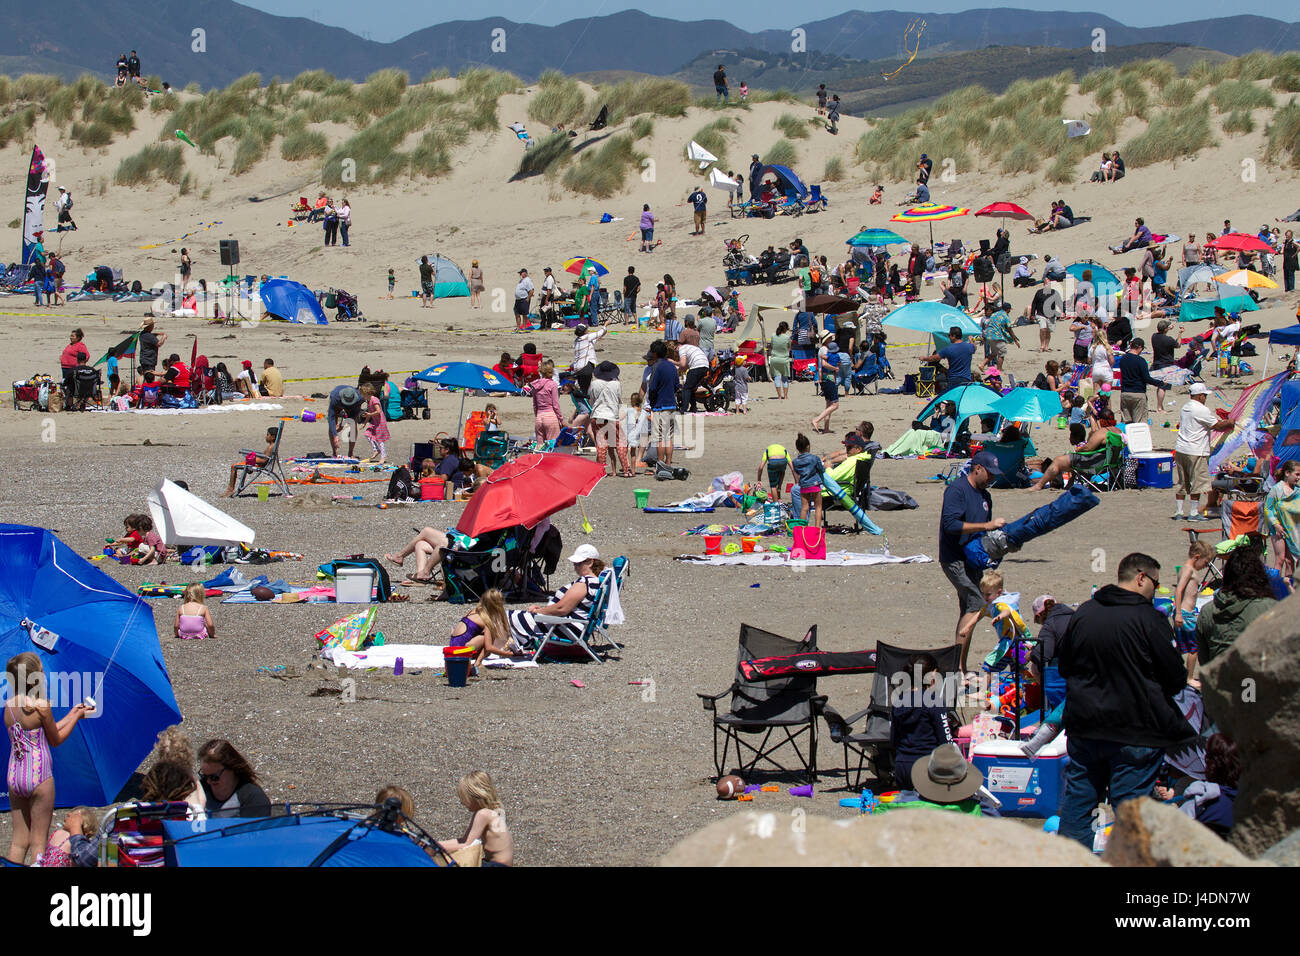 crowded beach for Kite festival - Stock Image